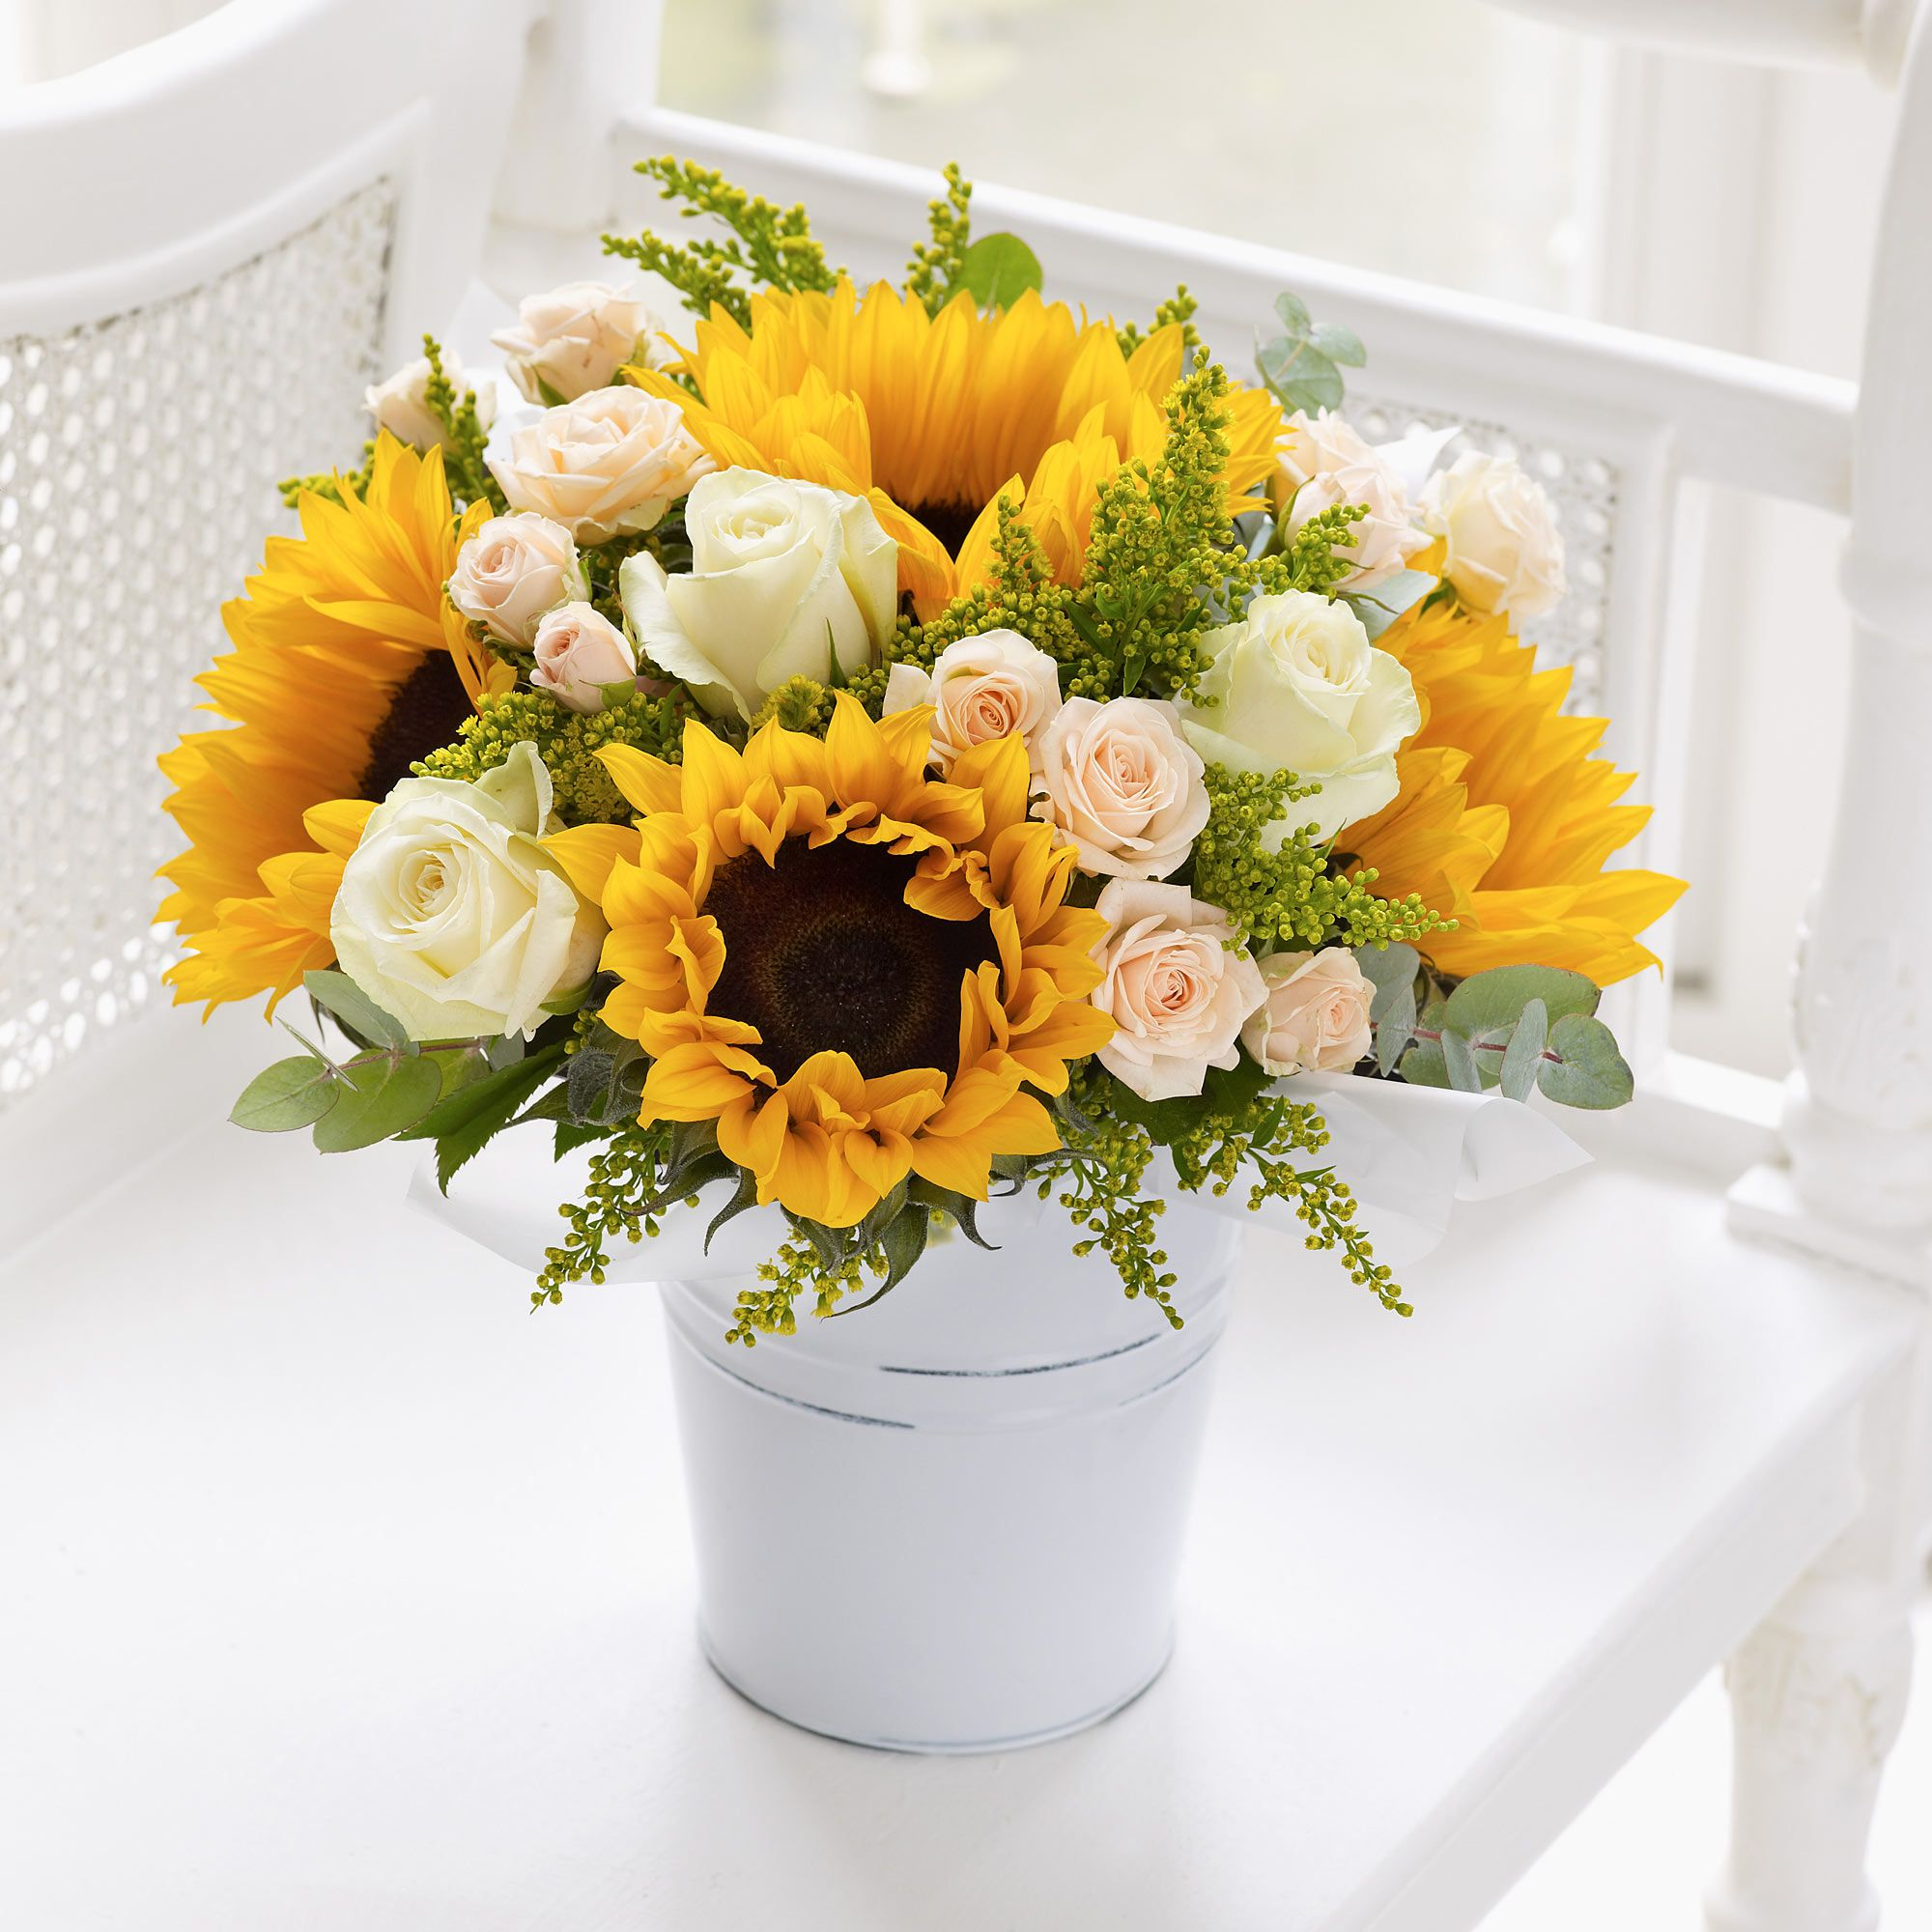 A Beautiful Arrangement For Your Wedding Table That Will